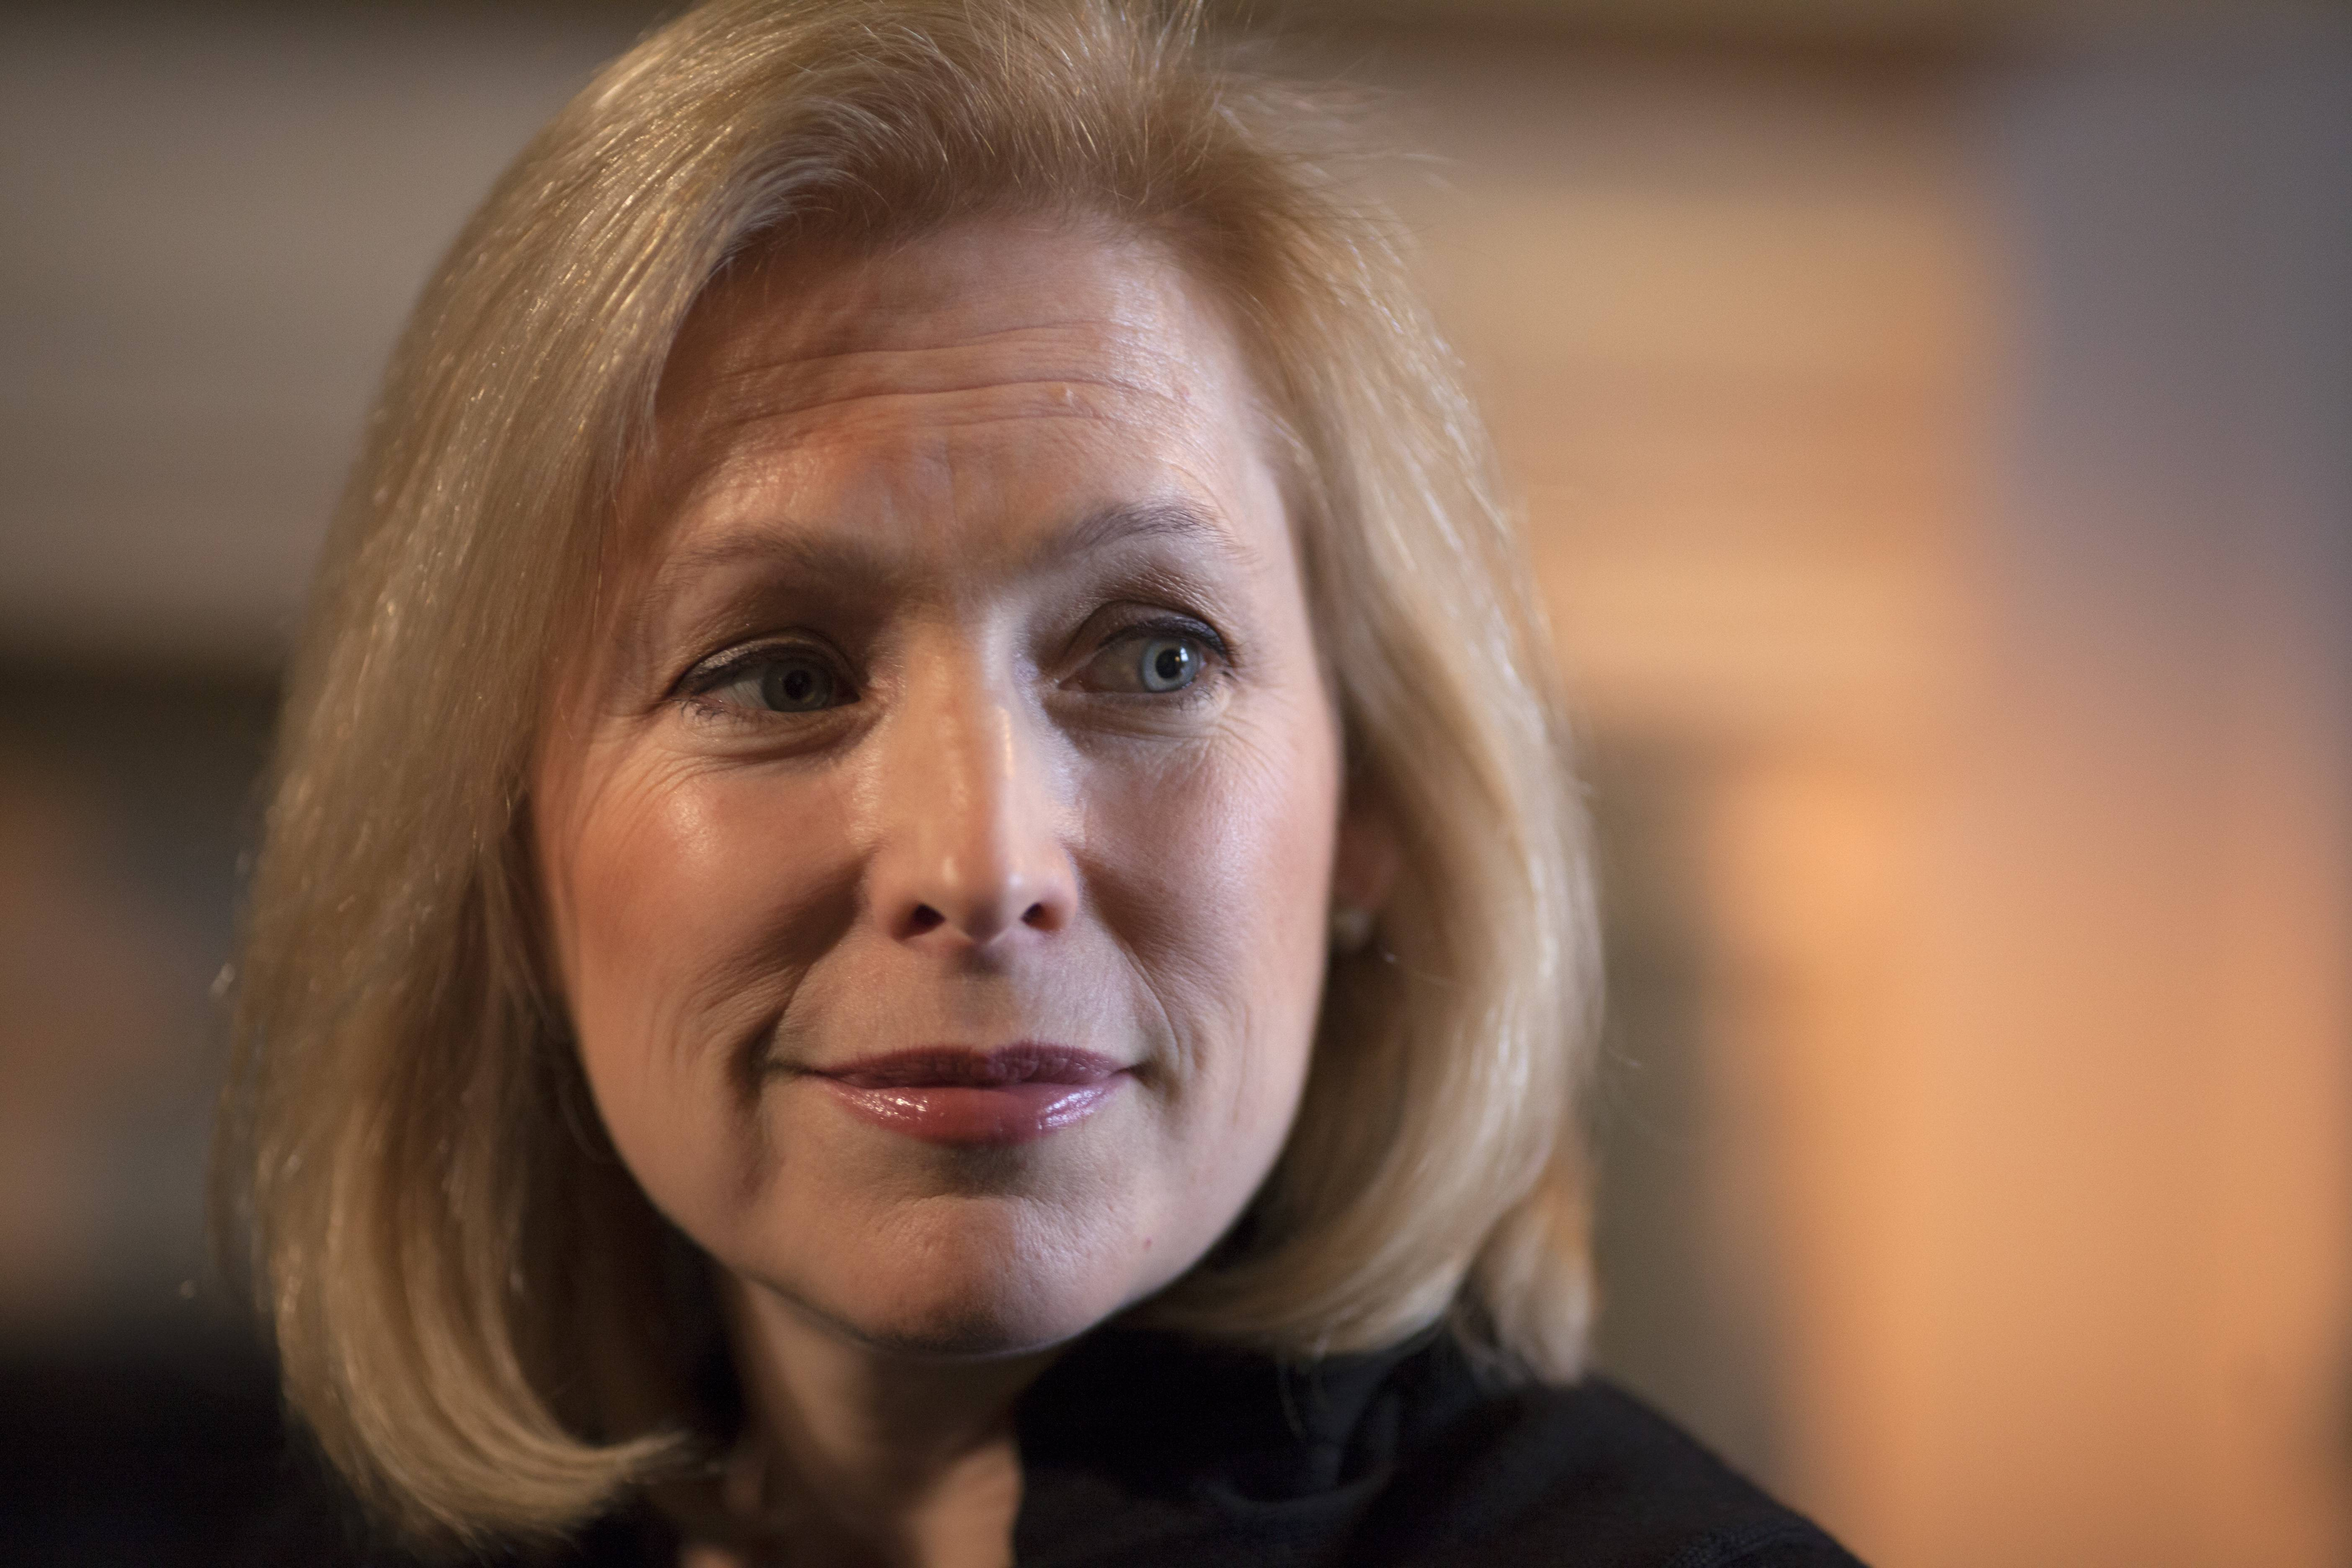 Sen. Kirsten Gillibrand, chair of the Senate Armed Services Subcommittee on Personnel, saw a controversial bill she sponsored voted down in the Senate Thursday. It would have stripped senior military commanders of their authority to prosecute rapes and other serious offenses,